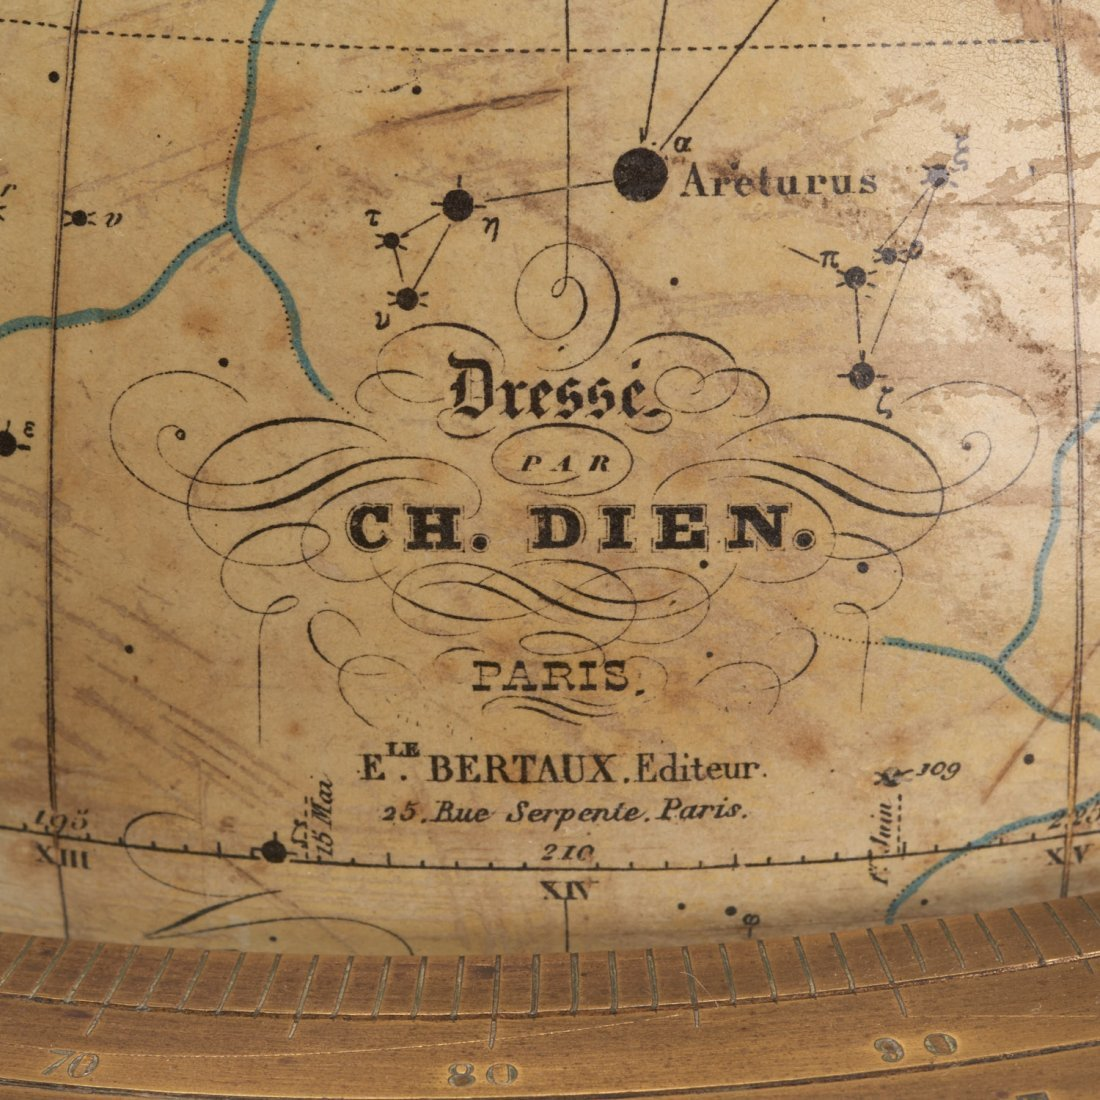 French celestial table globe by Charles Dien - 2